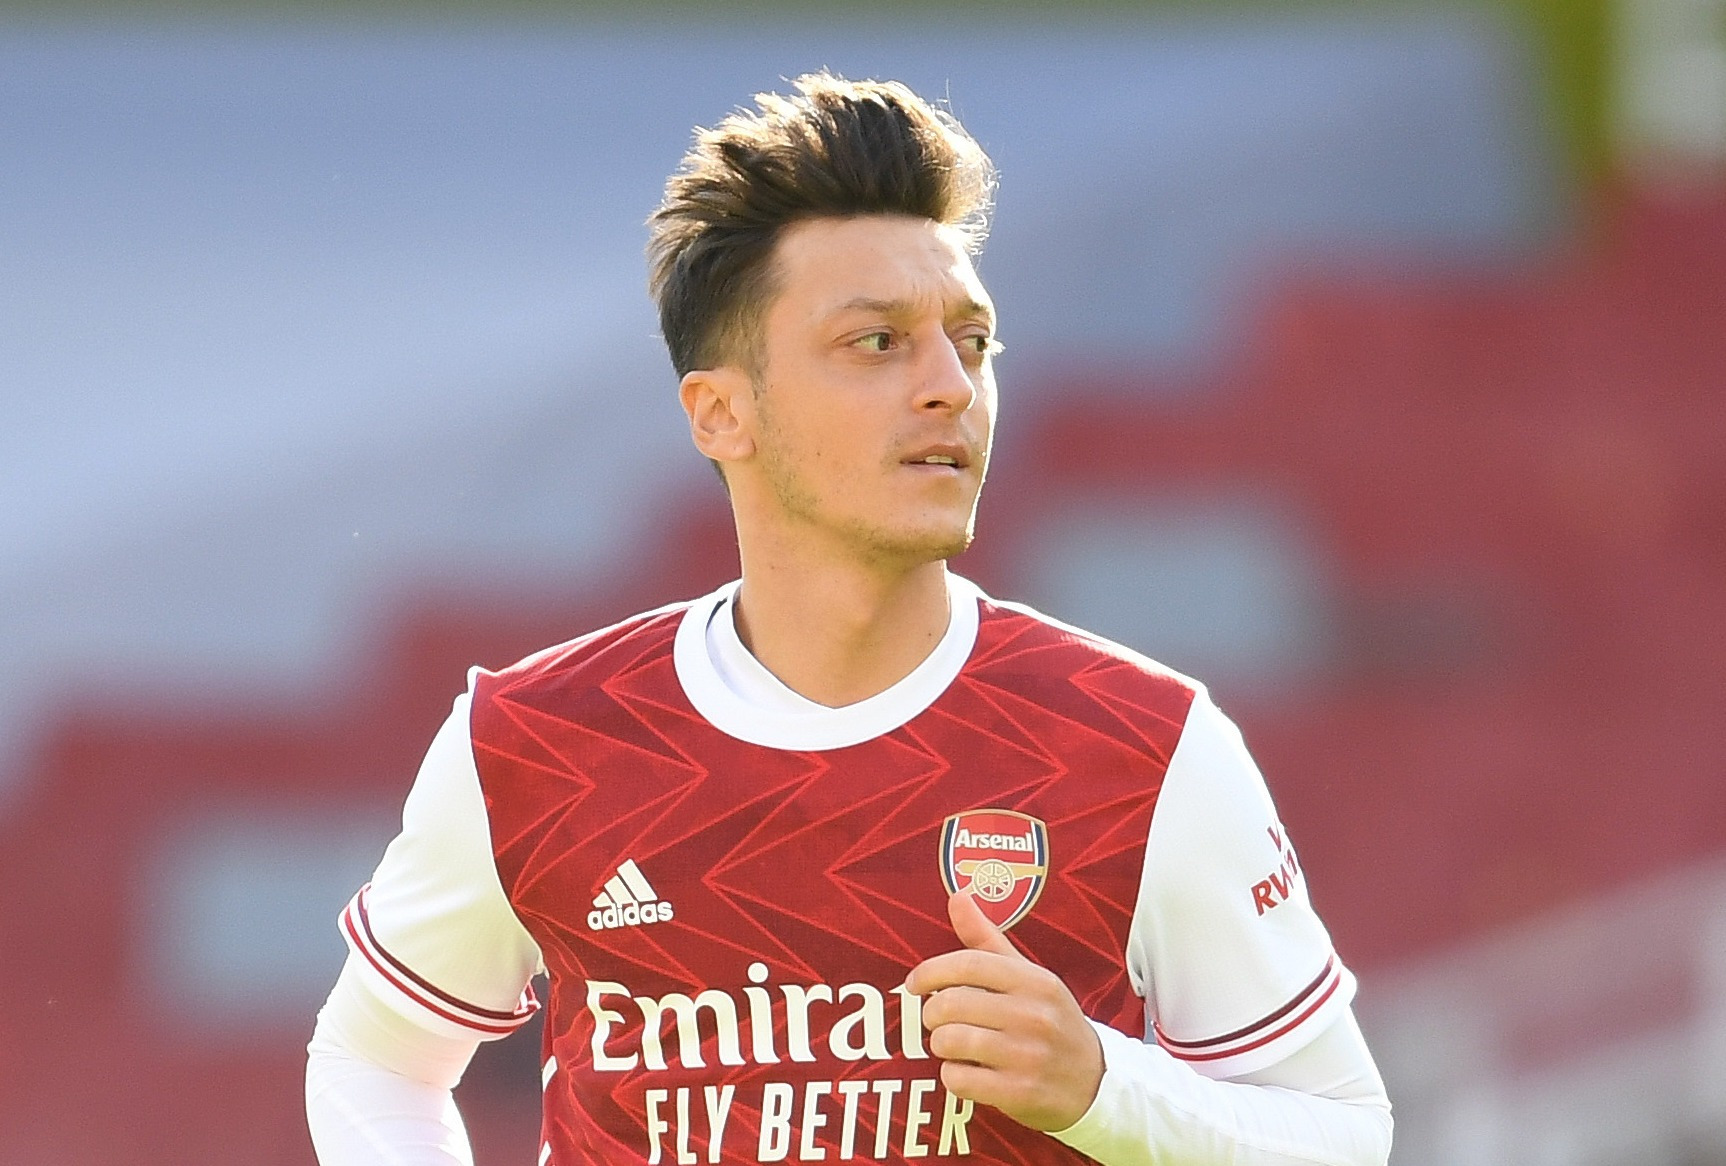 Mesut Ozil's Arsenal career may finally come to an end next month